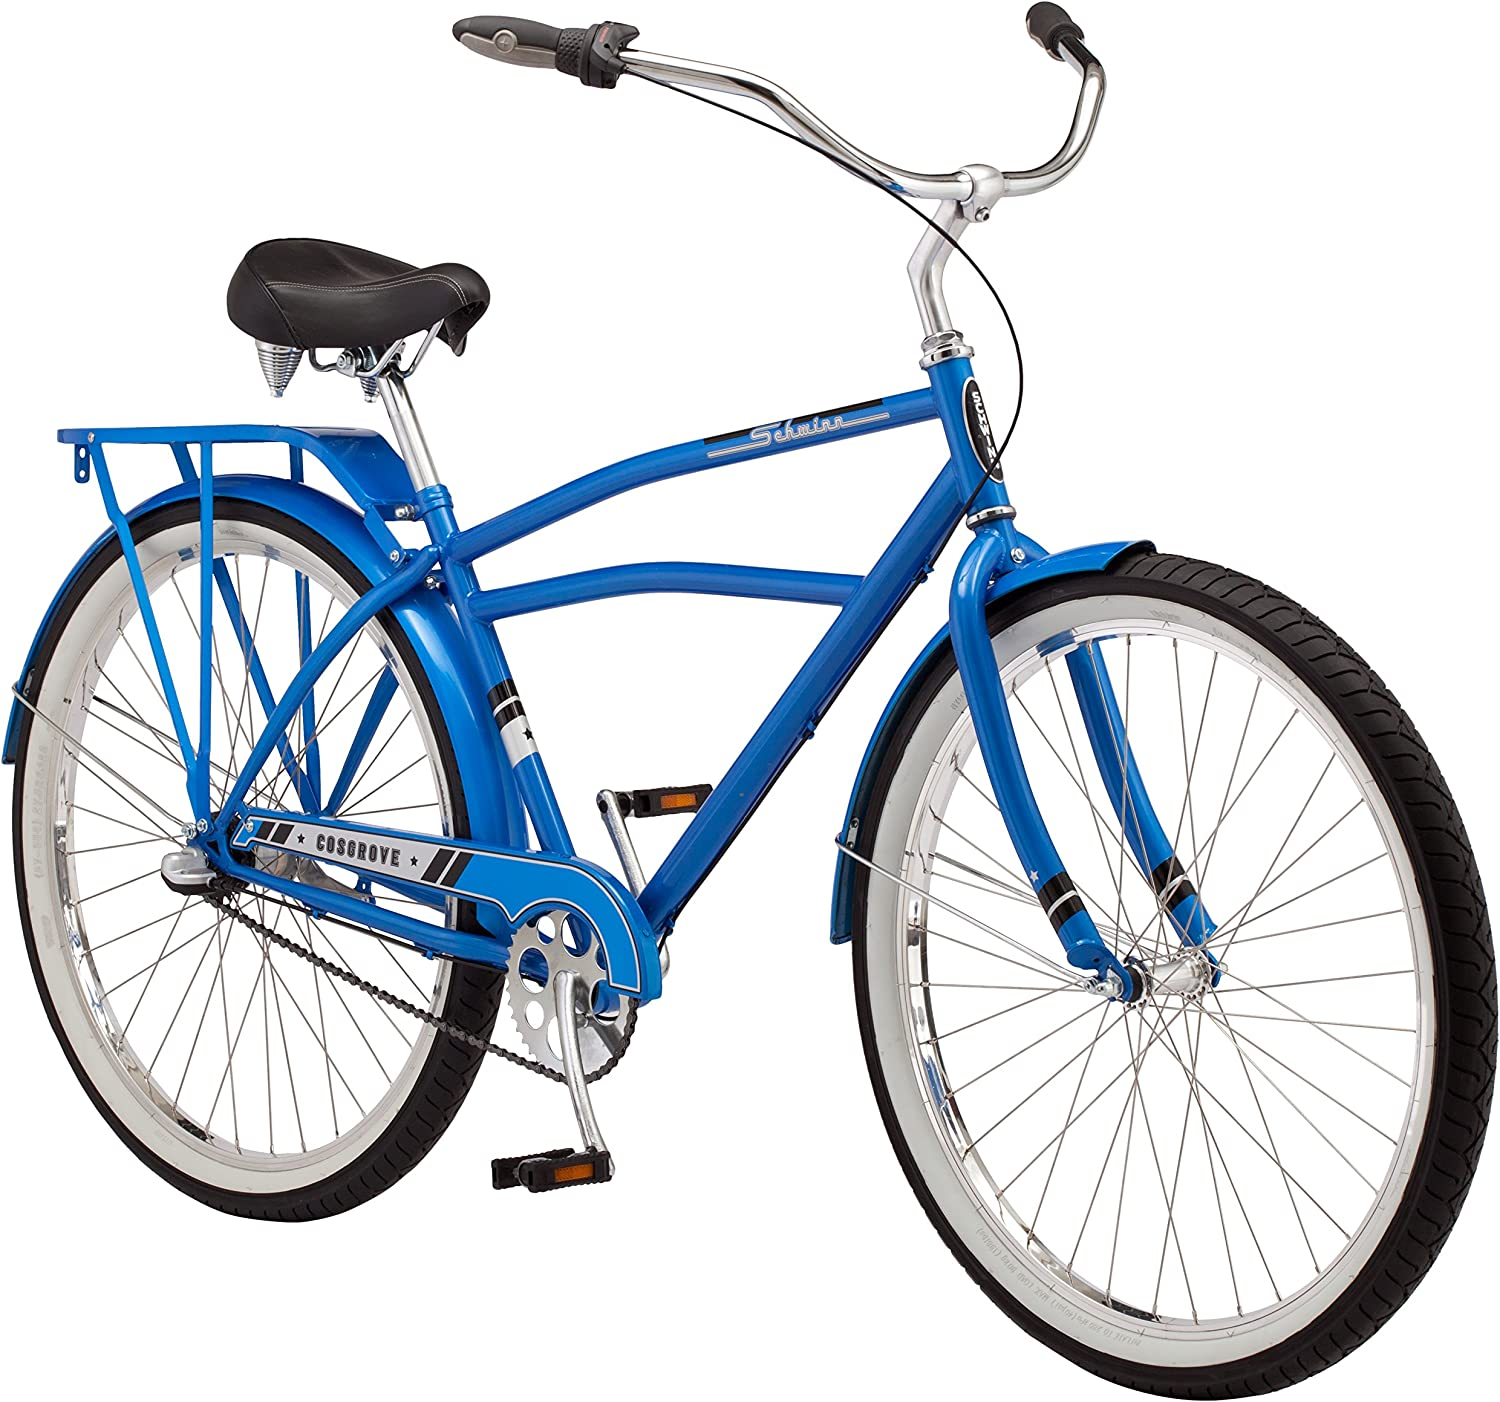 Schwinn Cosgrove Comfort Cruiser Bike, Medium Step-Over Steel Frame, Shimano 3-Speed Internal Drivetrain, Front and Rear Fenders, Rear Rack, Kick Stand, and 27.5-Inch Wheels, Blue